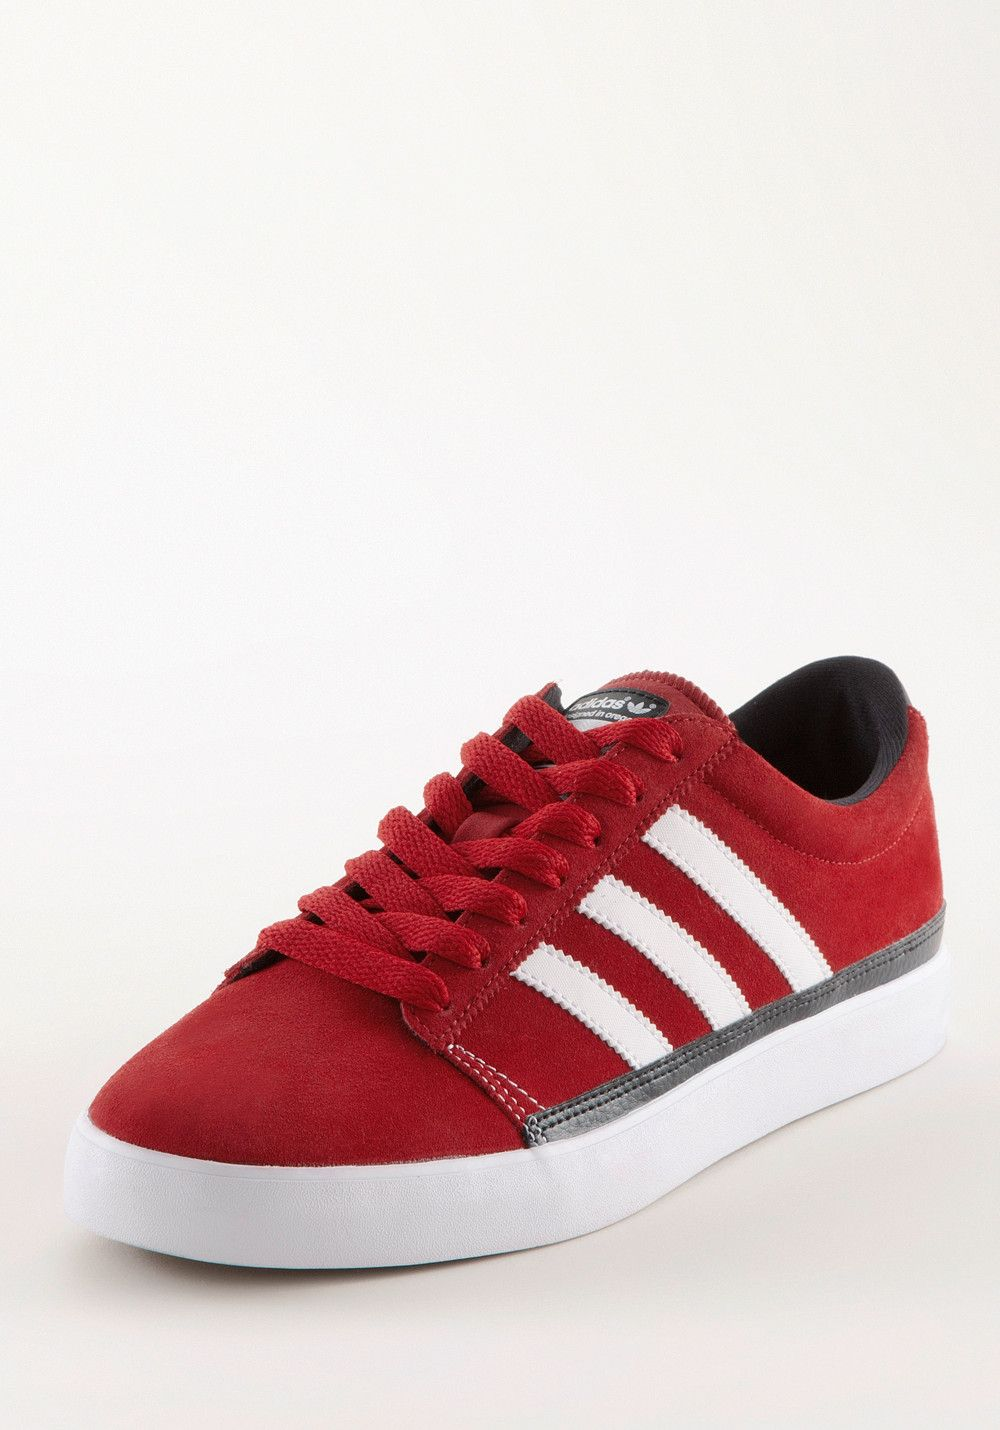 ADIDAS Rayado Low Suede | #fashion | Adidas, Adidas